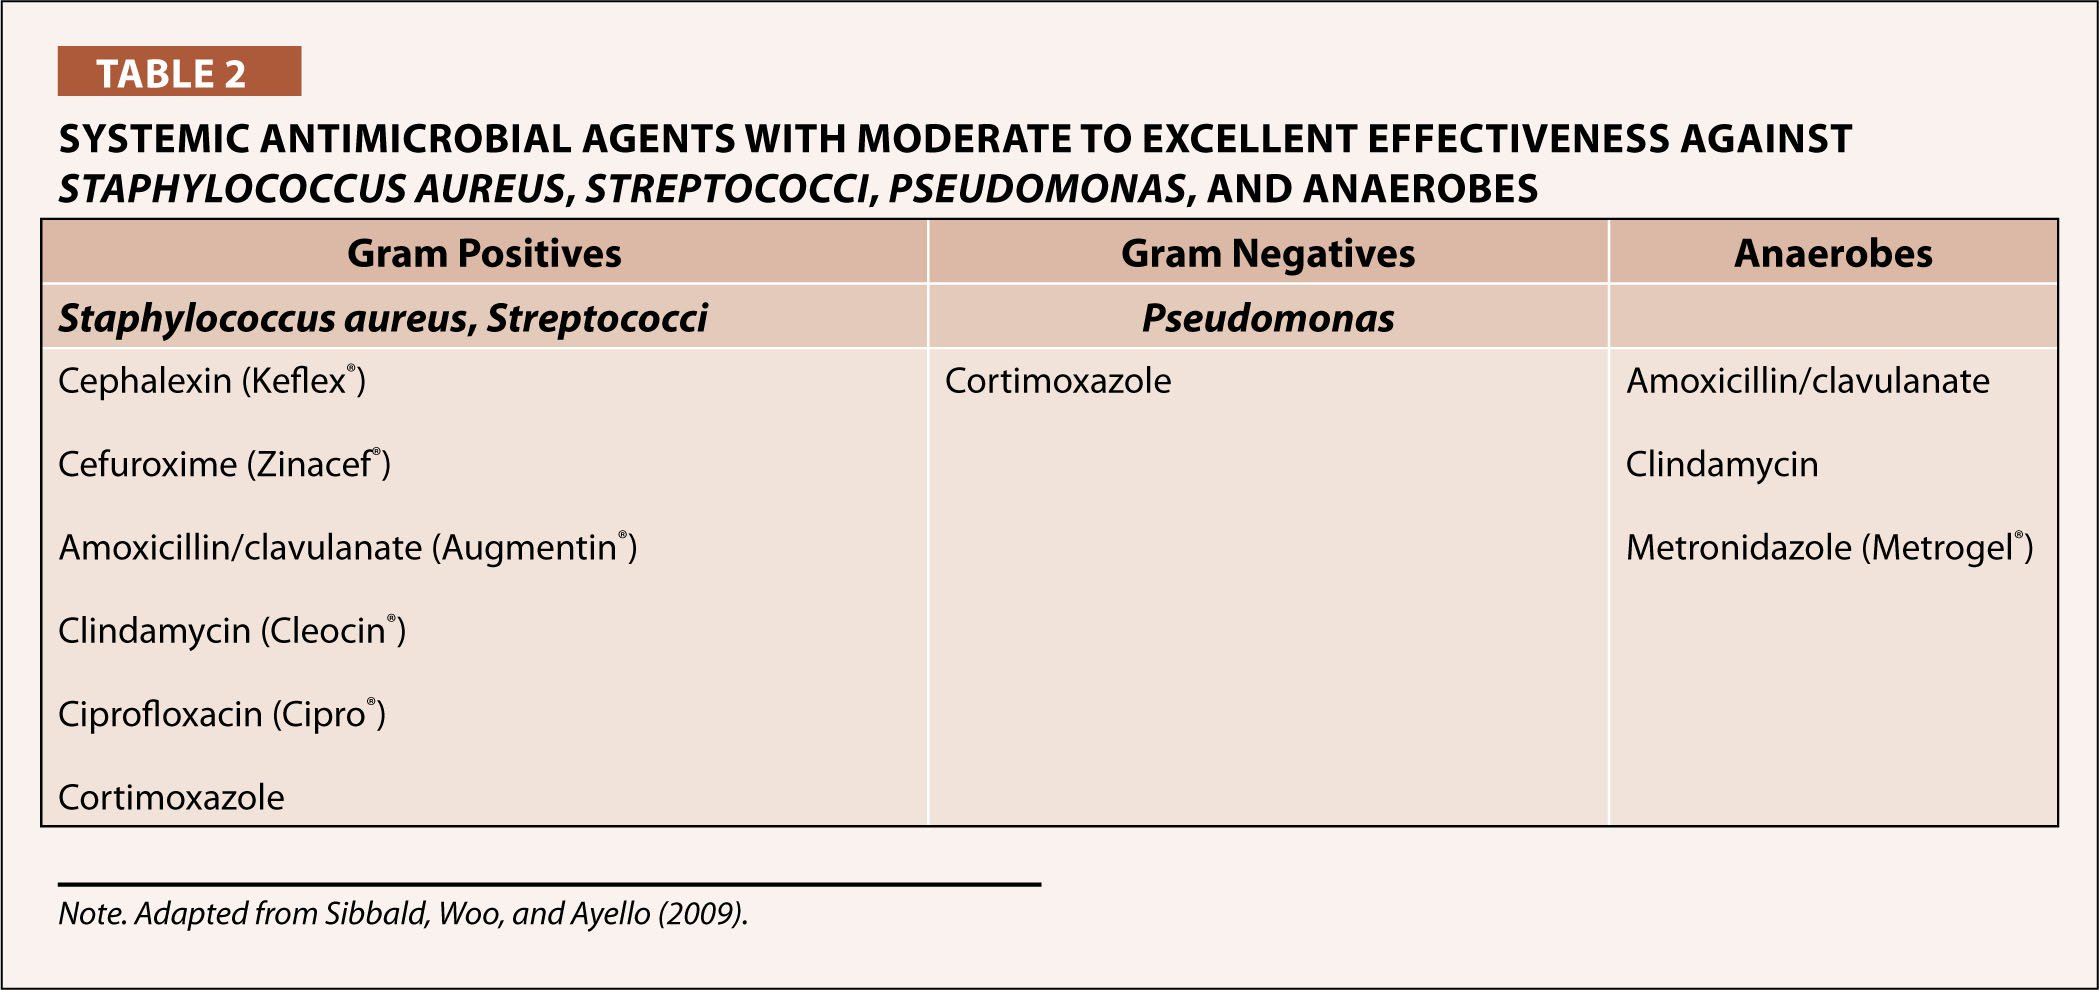 Systemic Antimicrobial Agents with Moderate to Excellent Effectiveness Against Staphylococcus Aureus, Streptococci, Pseudomonas, and Anaerobes